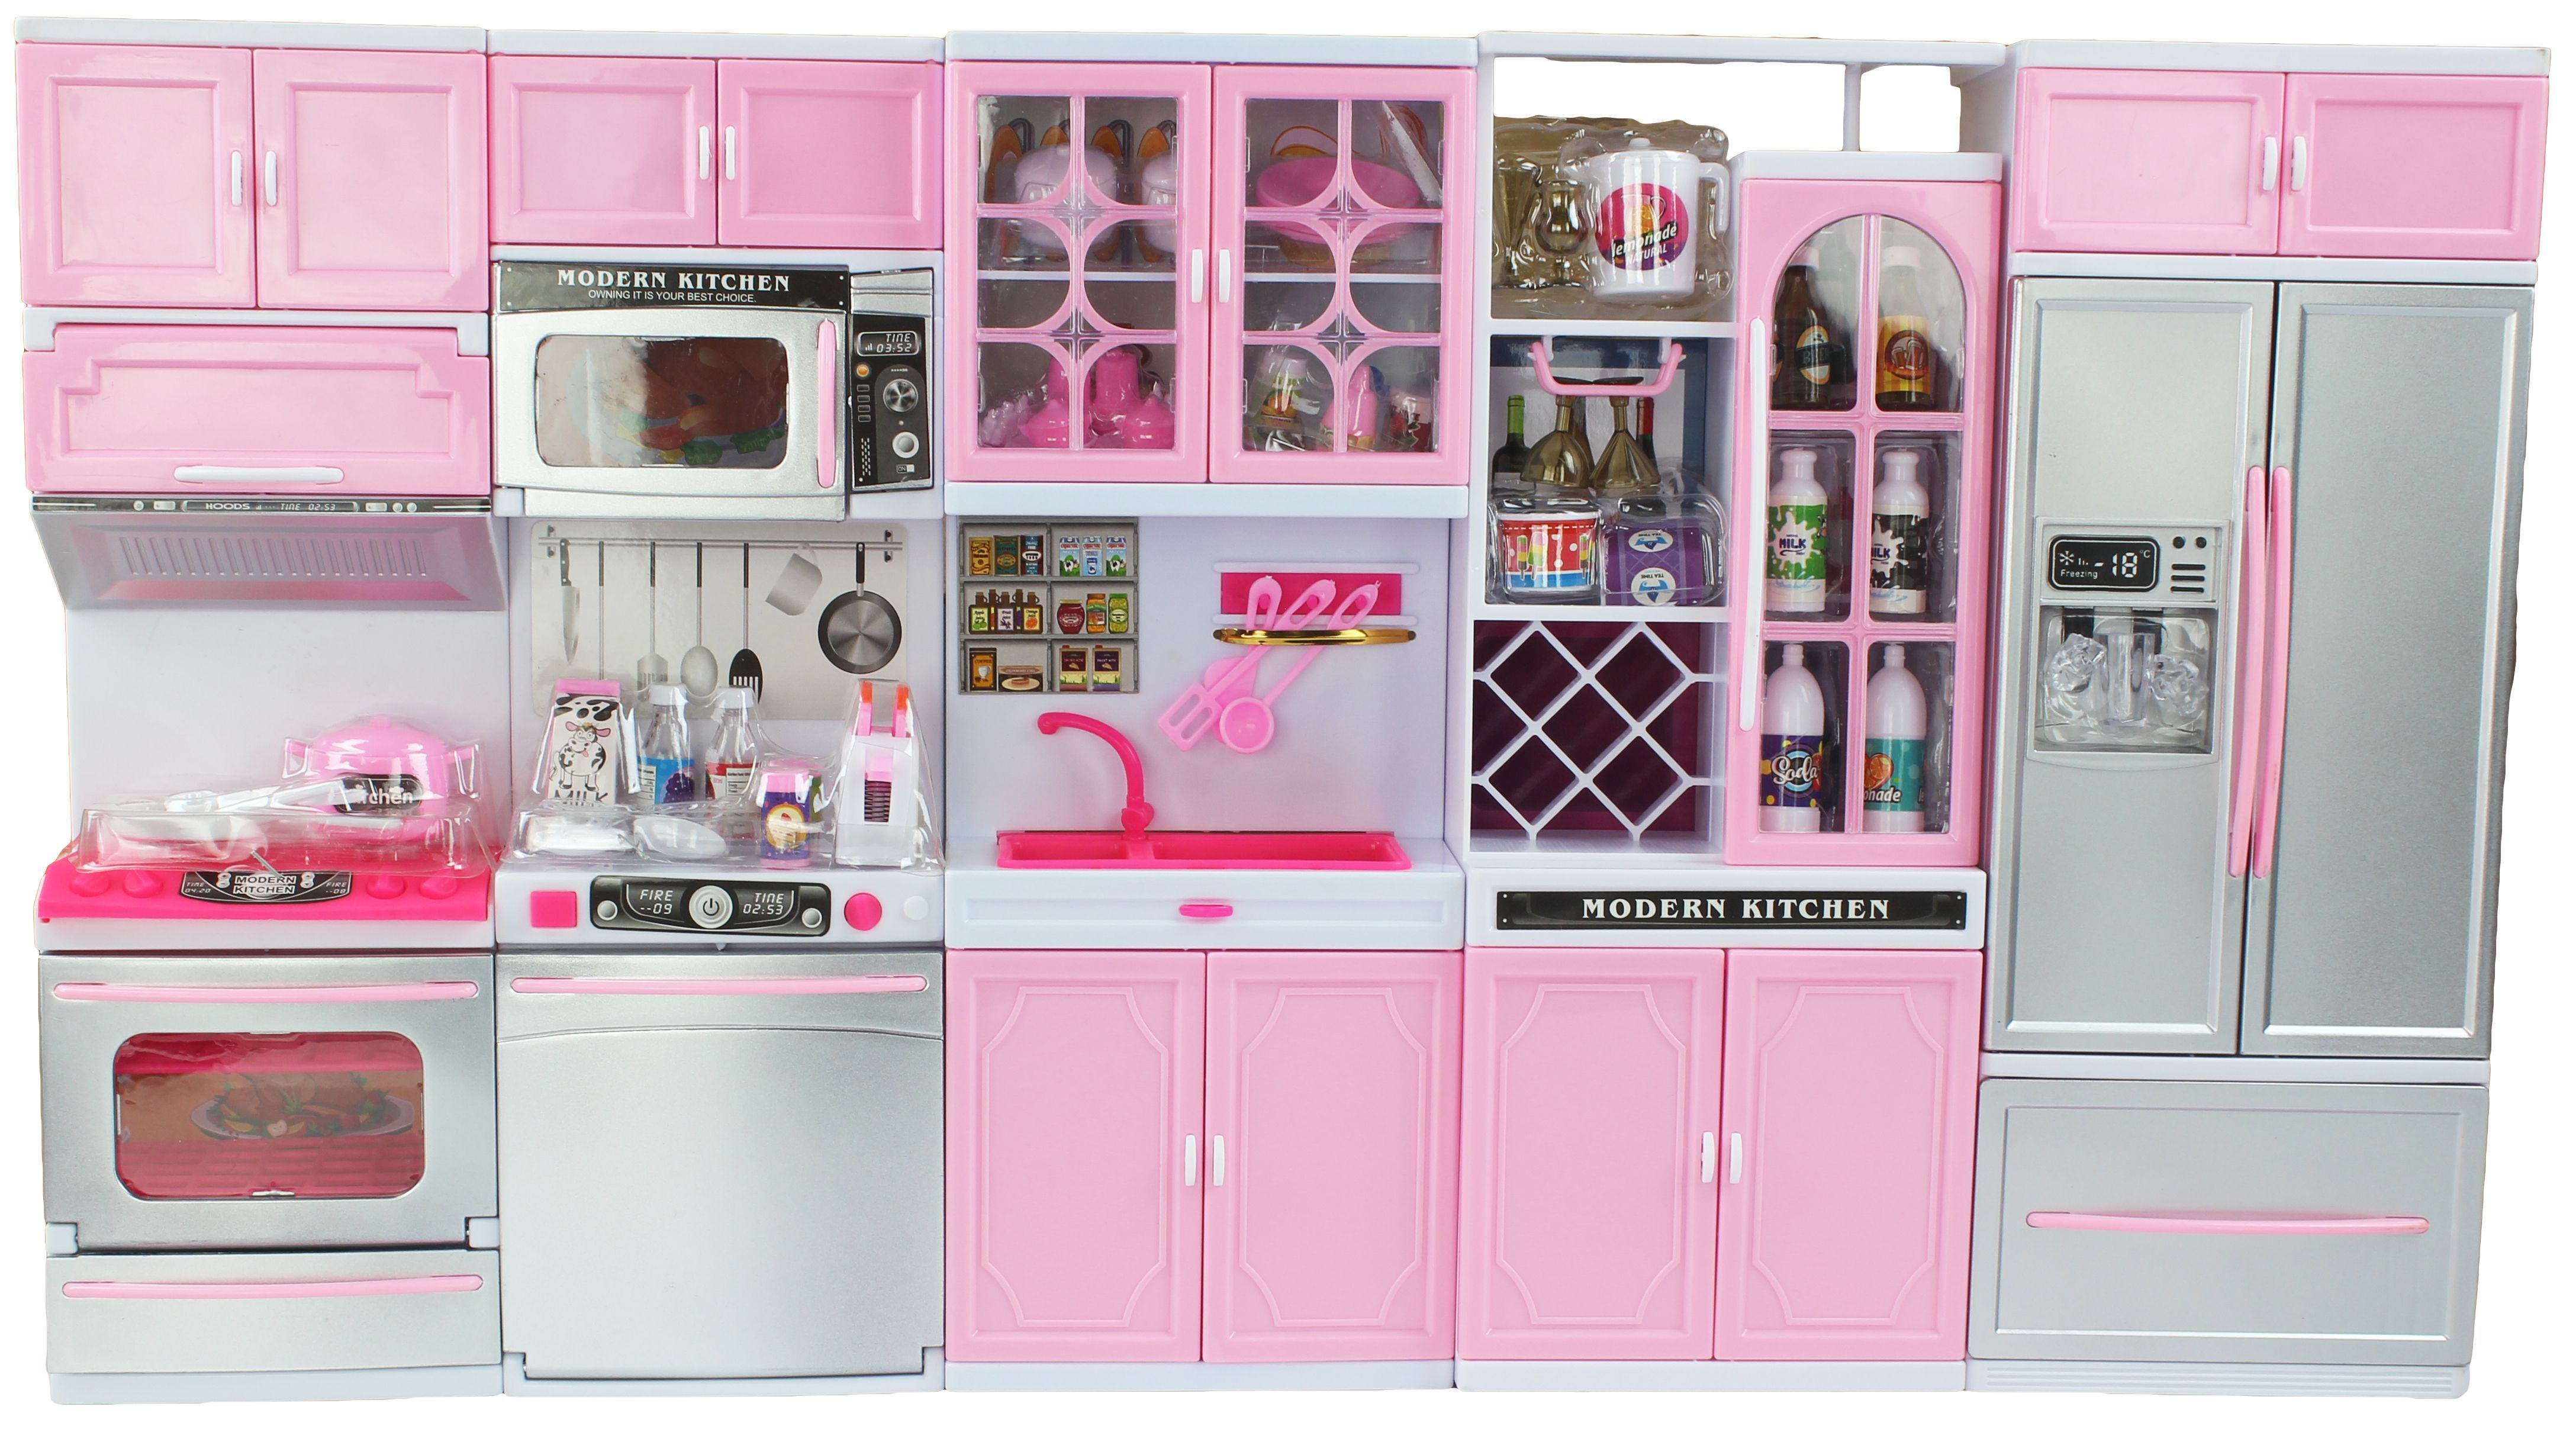 Free 2 Day Shipping Buy Battery Operated 12 Tall Large Luxurious Toy Kitchen Playset 11 12 Tall Dolls Sounds Barbie Kitchen Set Toy Kitchen Barbie Kitchen